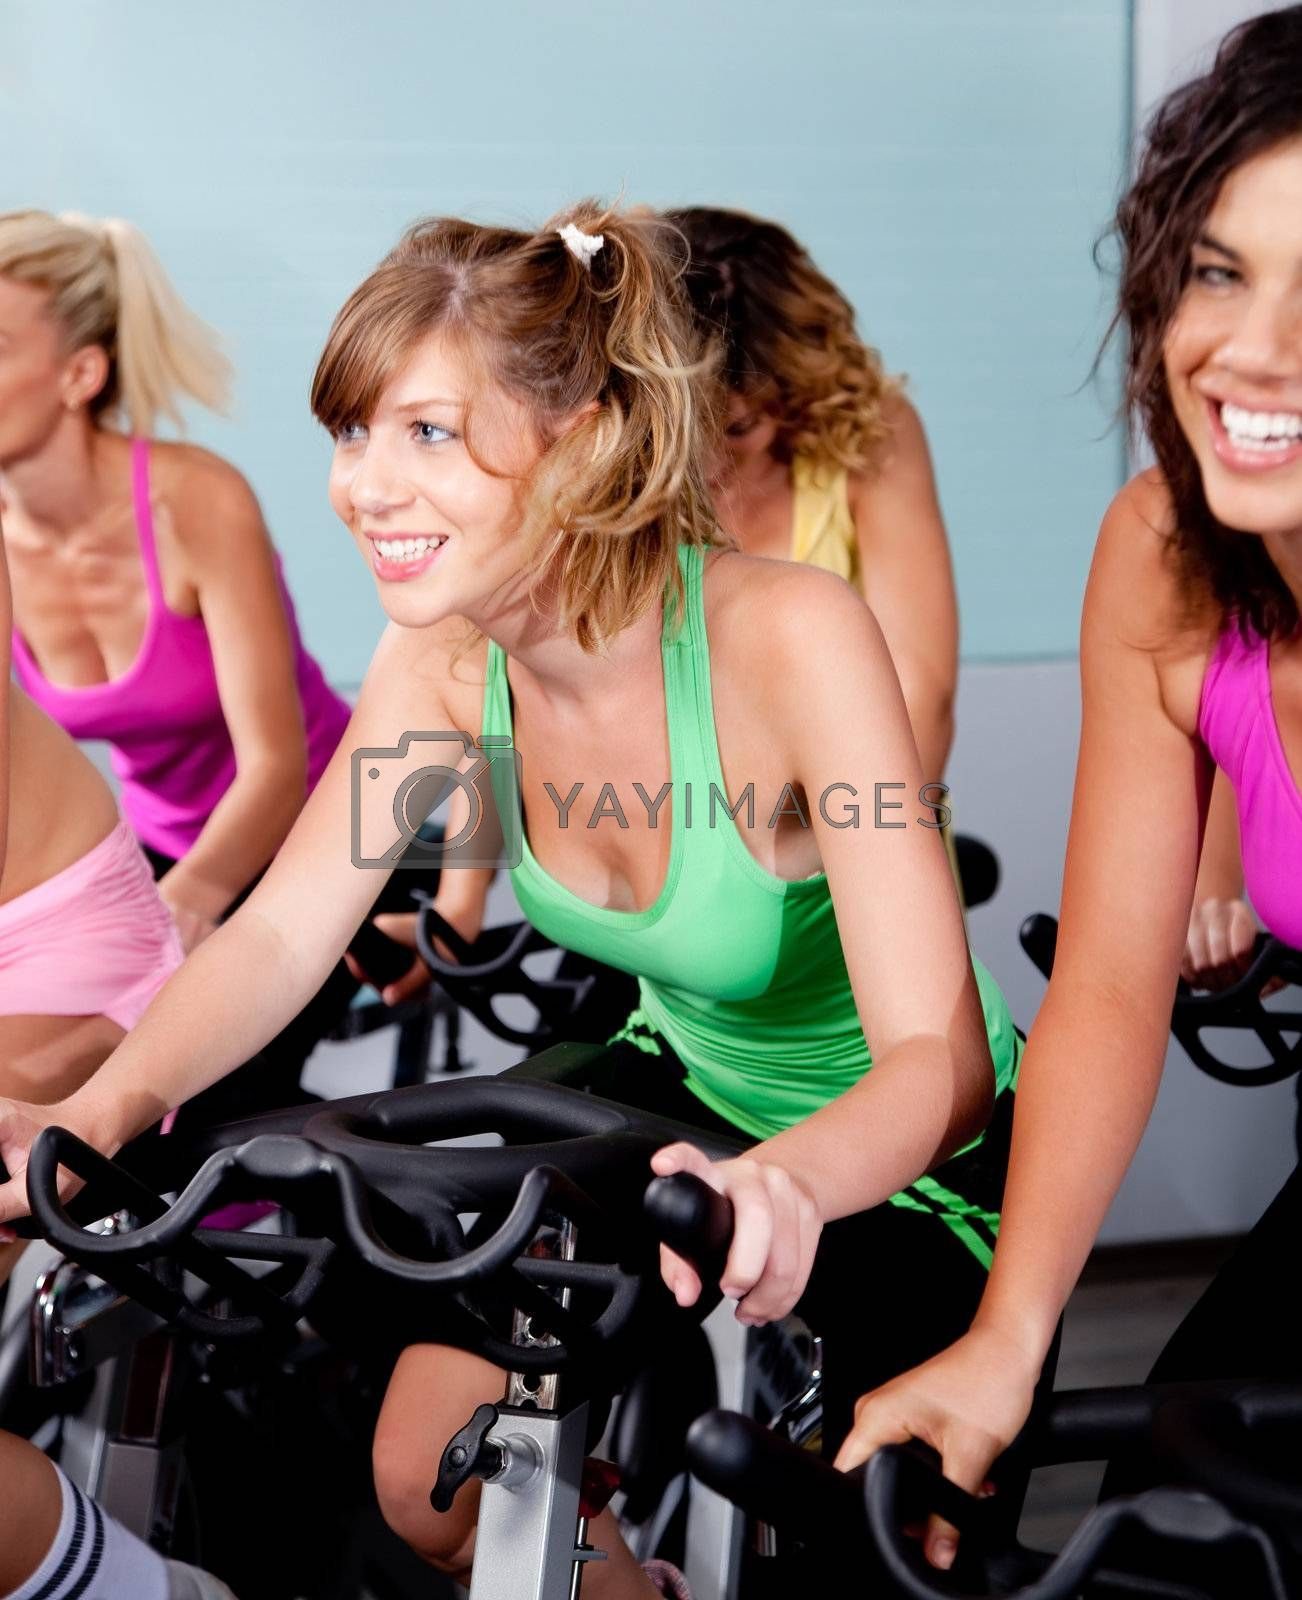 image of female cycling in fitness club